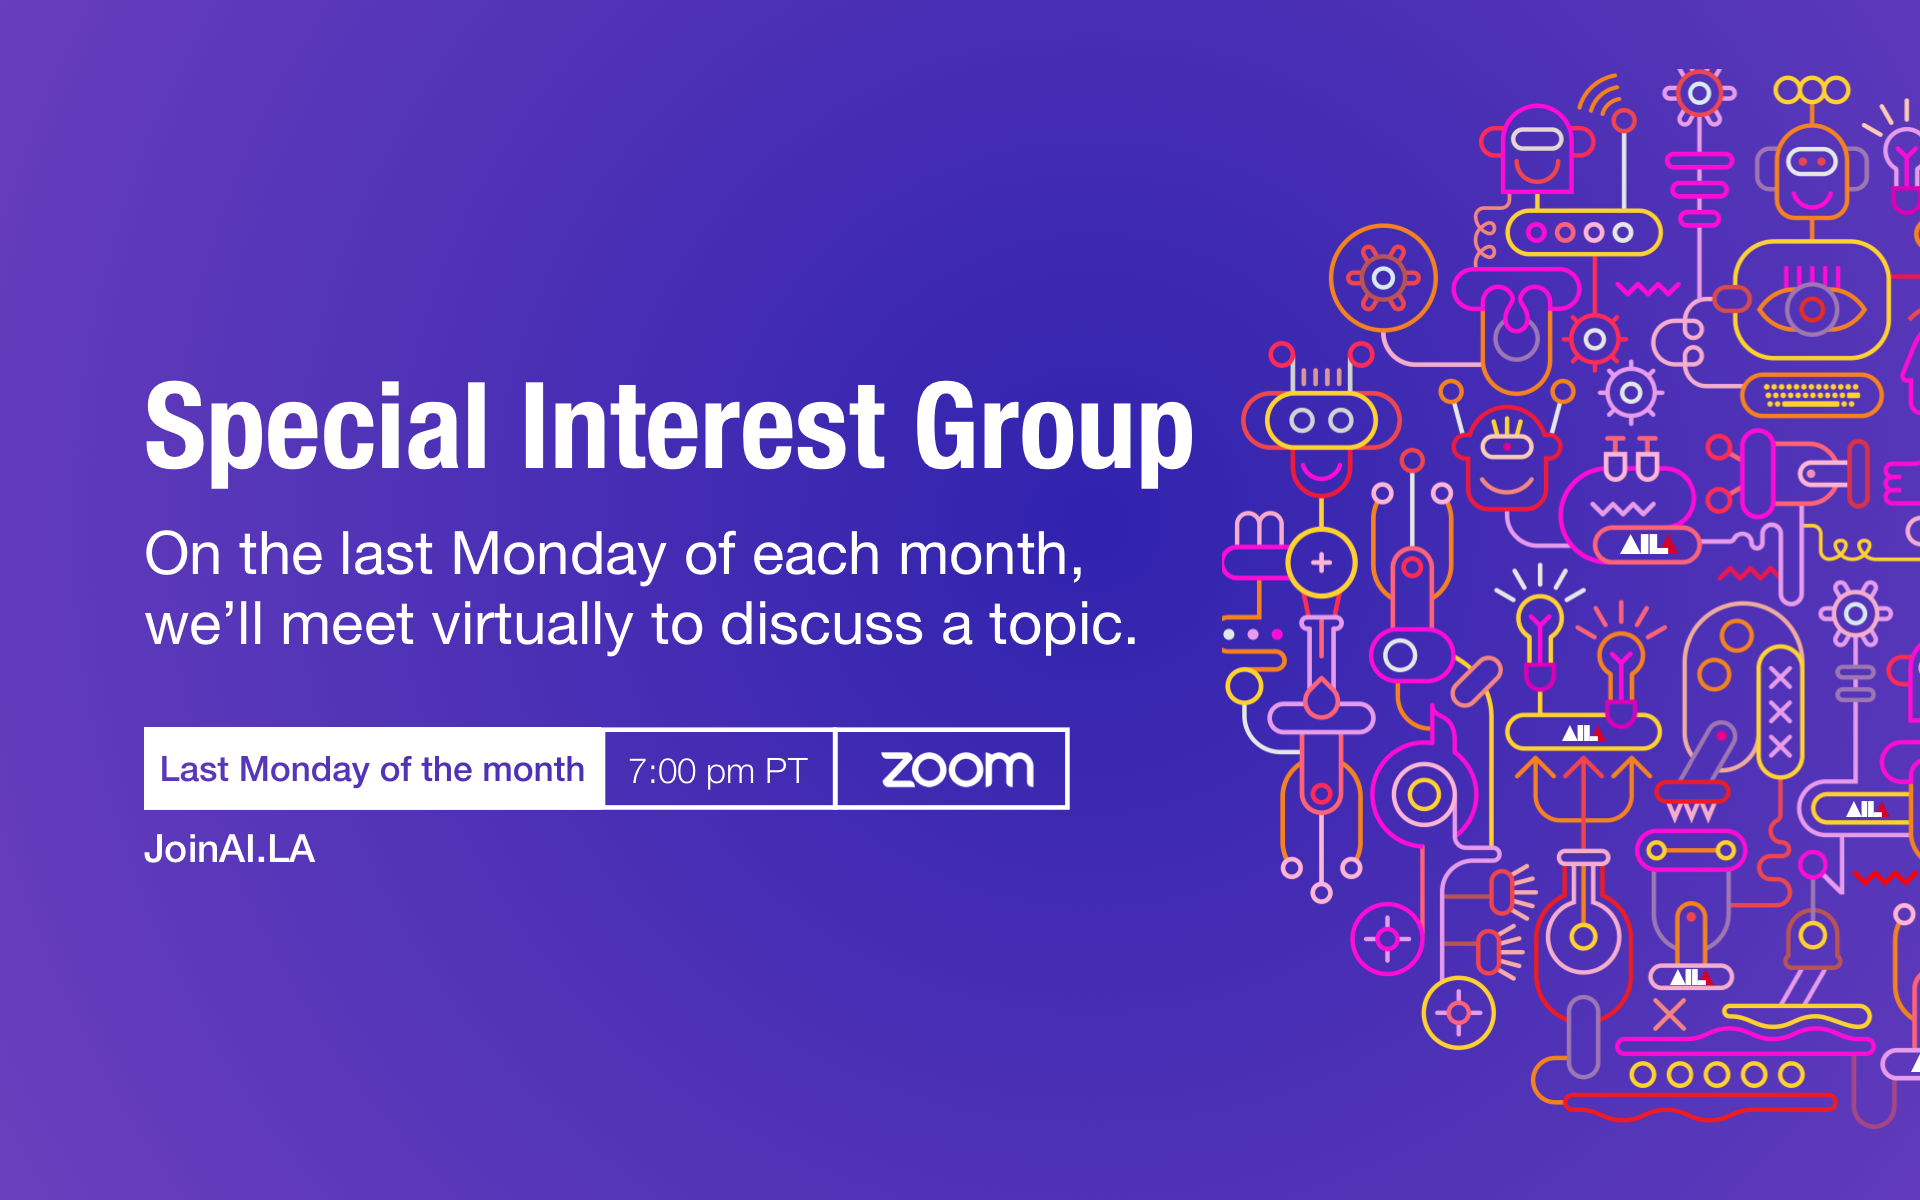 Special interest group clubhouse event on last monday of each month 7PM PT